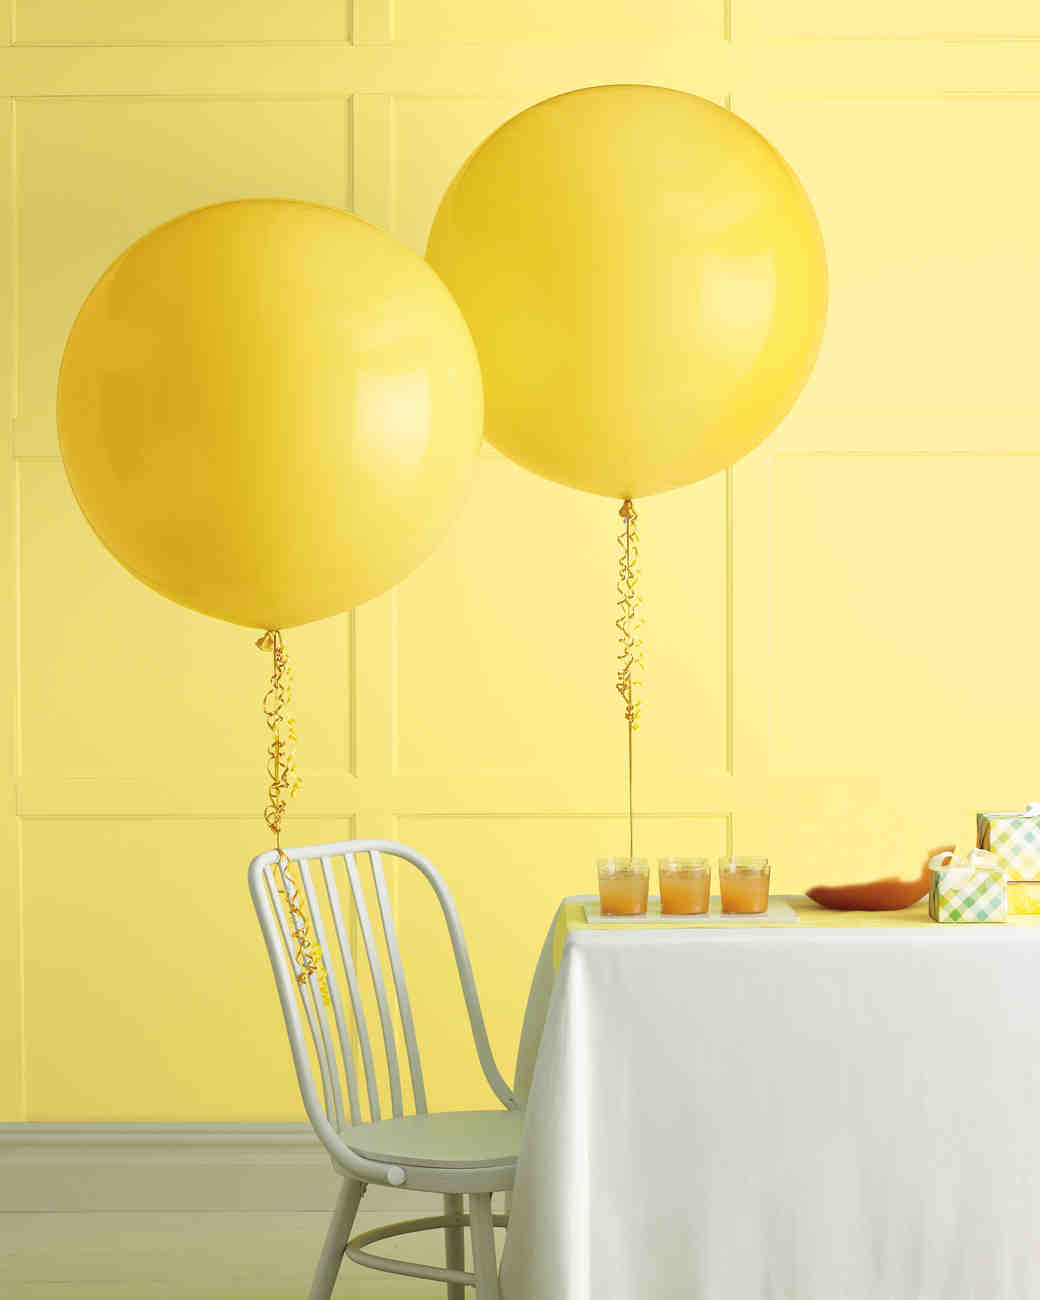 Diy balloon wedding decor martha stewart weddings dhlflorist Images